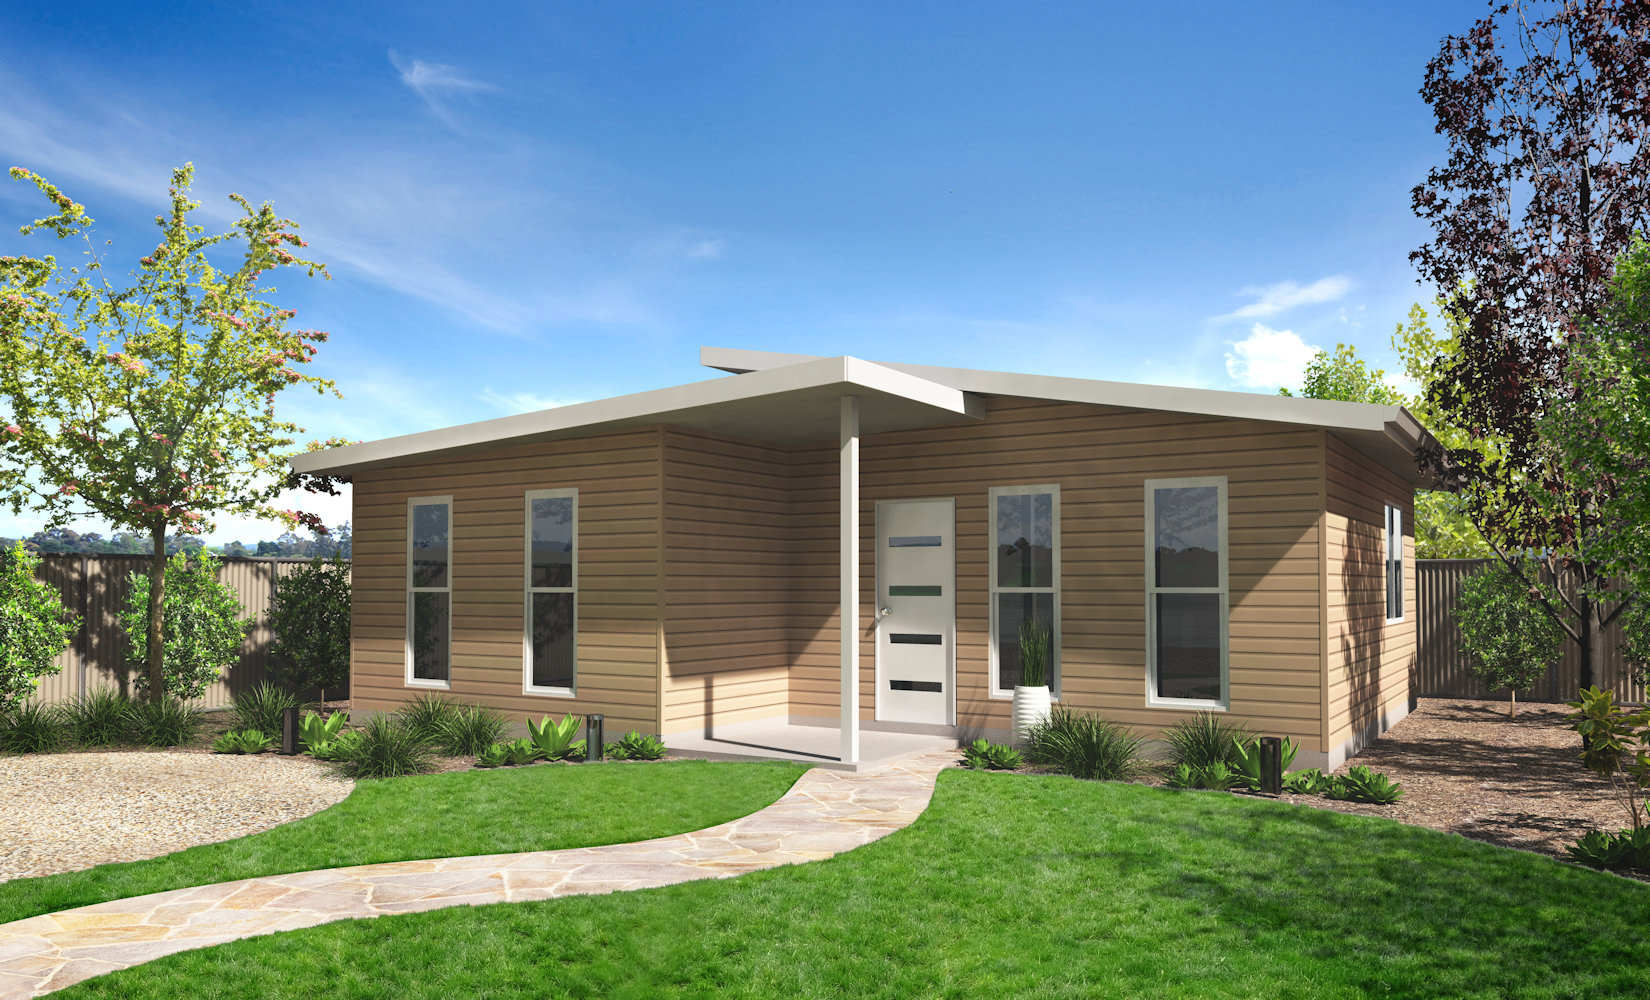 Our Guide to Building & Financing a Granny Flat